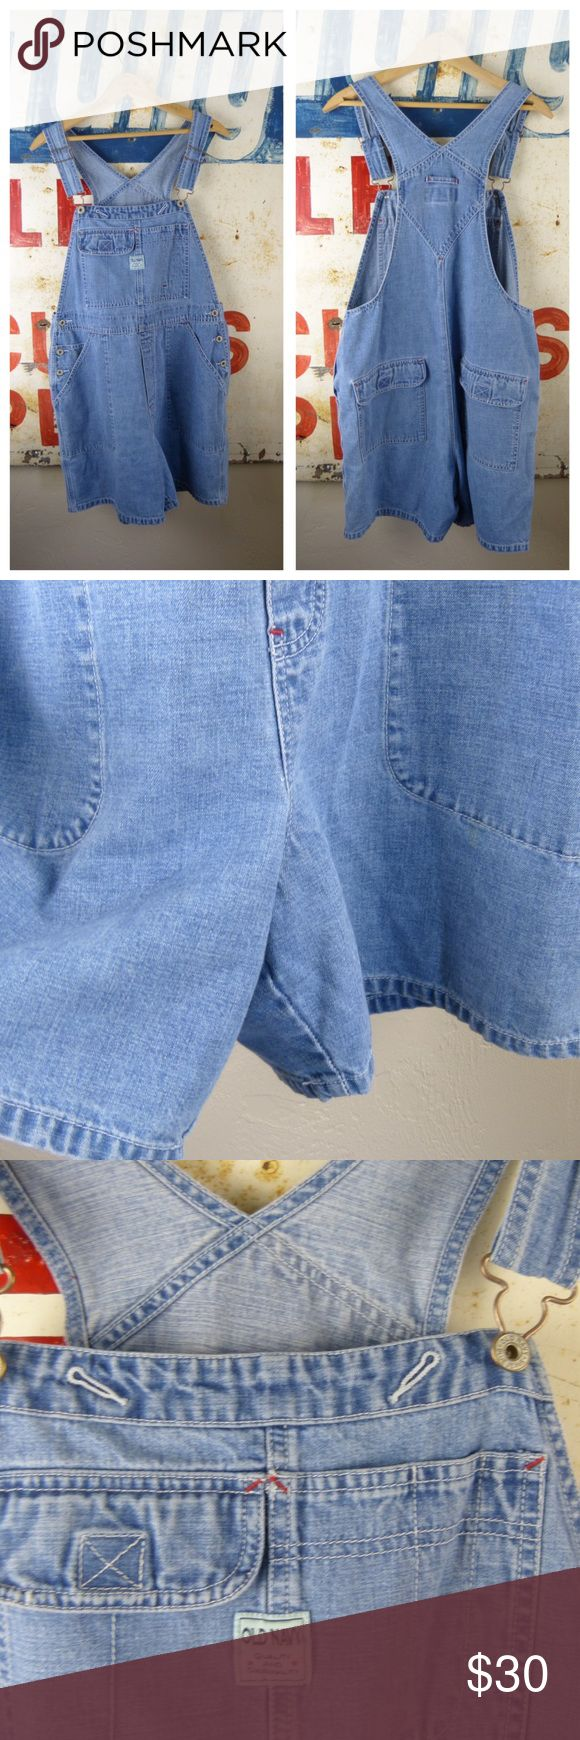 "Vintage Old Navy Denim Jeans Overalls Sz Large Excellent condition Cotton Adjustable straps 6"" inseam 18"" across the waist Old Navy Jeans Overalls"